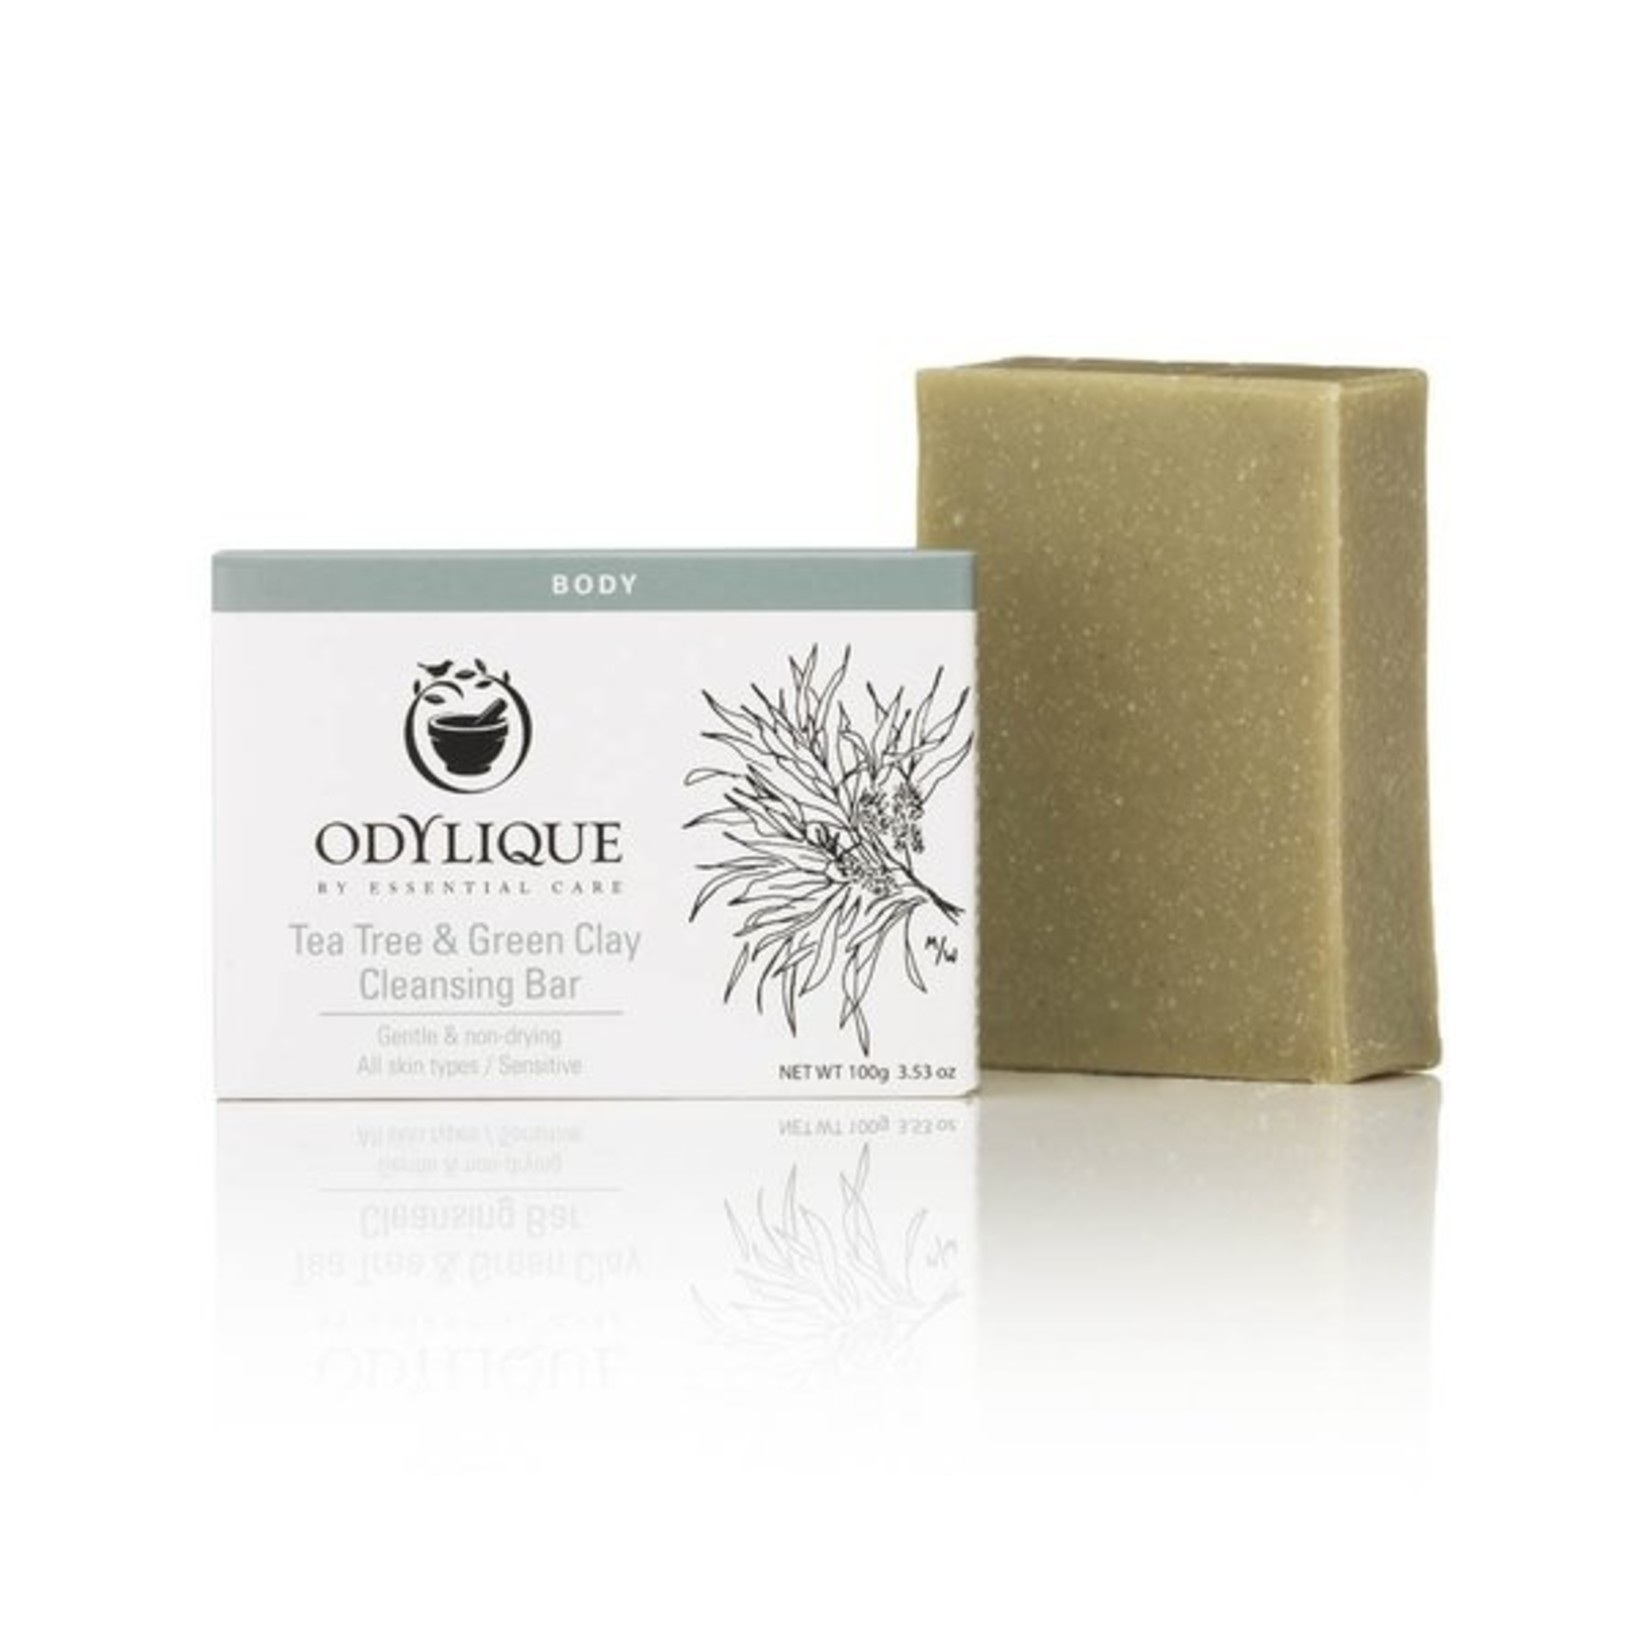 Odylique Odylique tea tree & green clay cleansing bar - ontsmettend en zuiverend